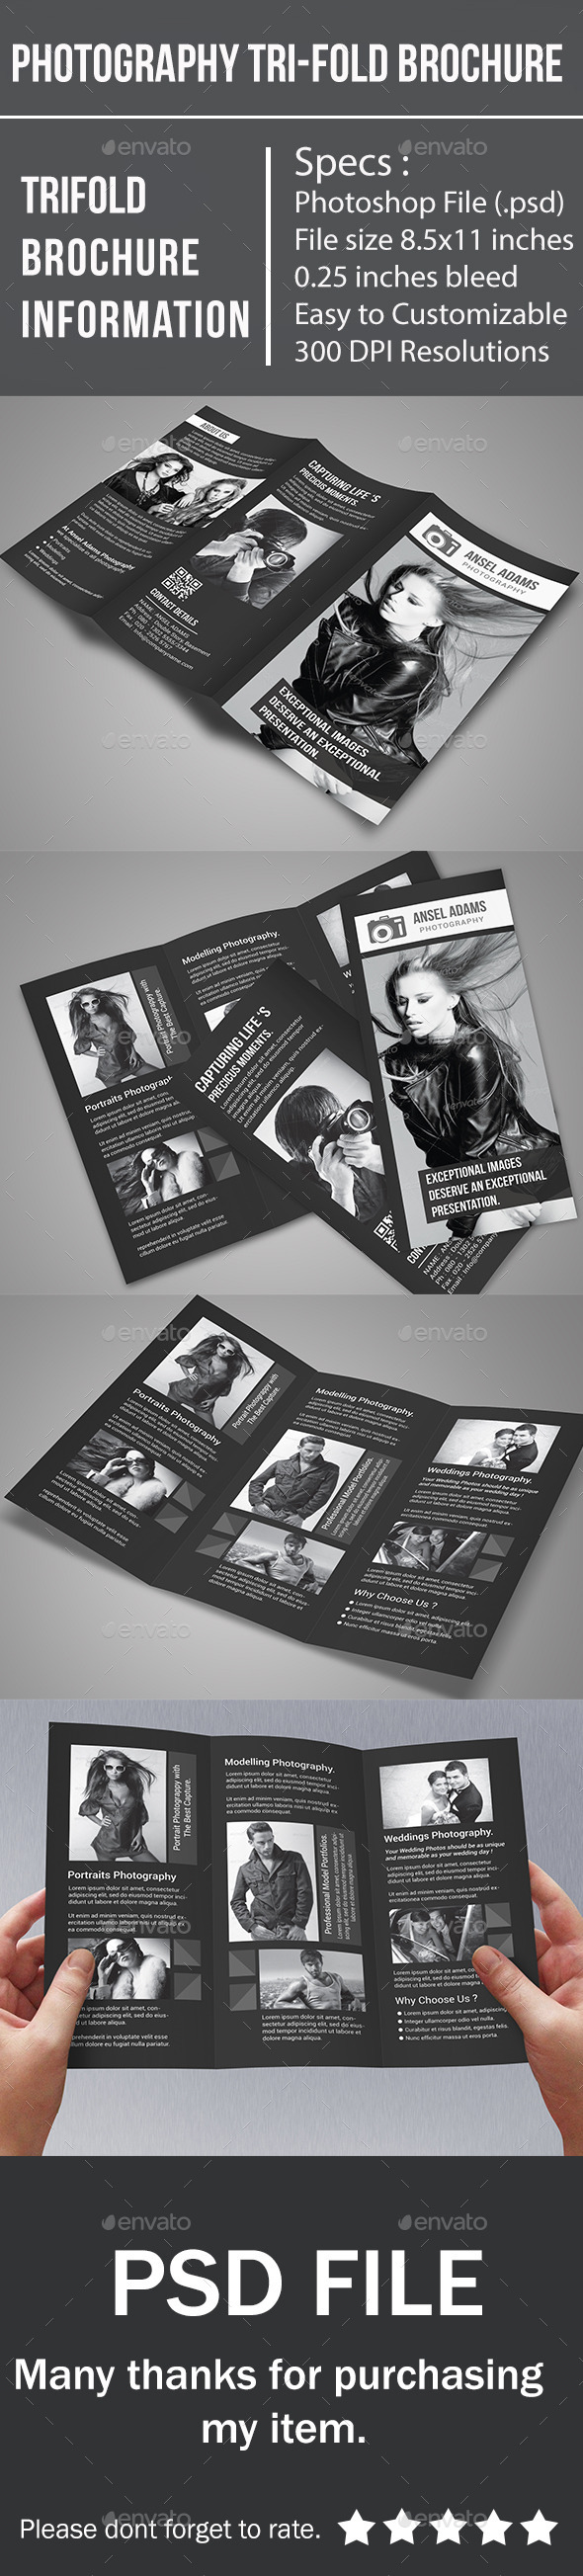 GraphicRiver Photography Tri-Fold Brochure 10414669